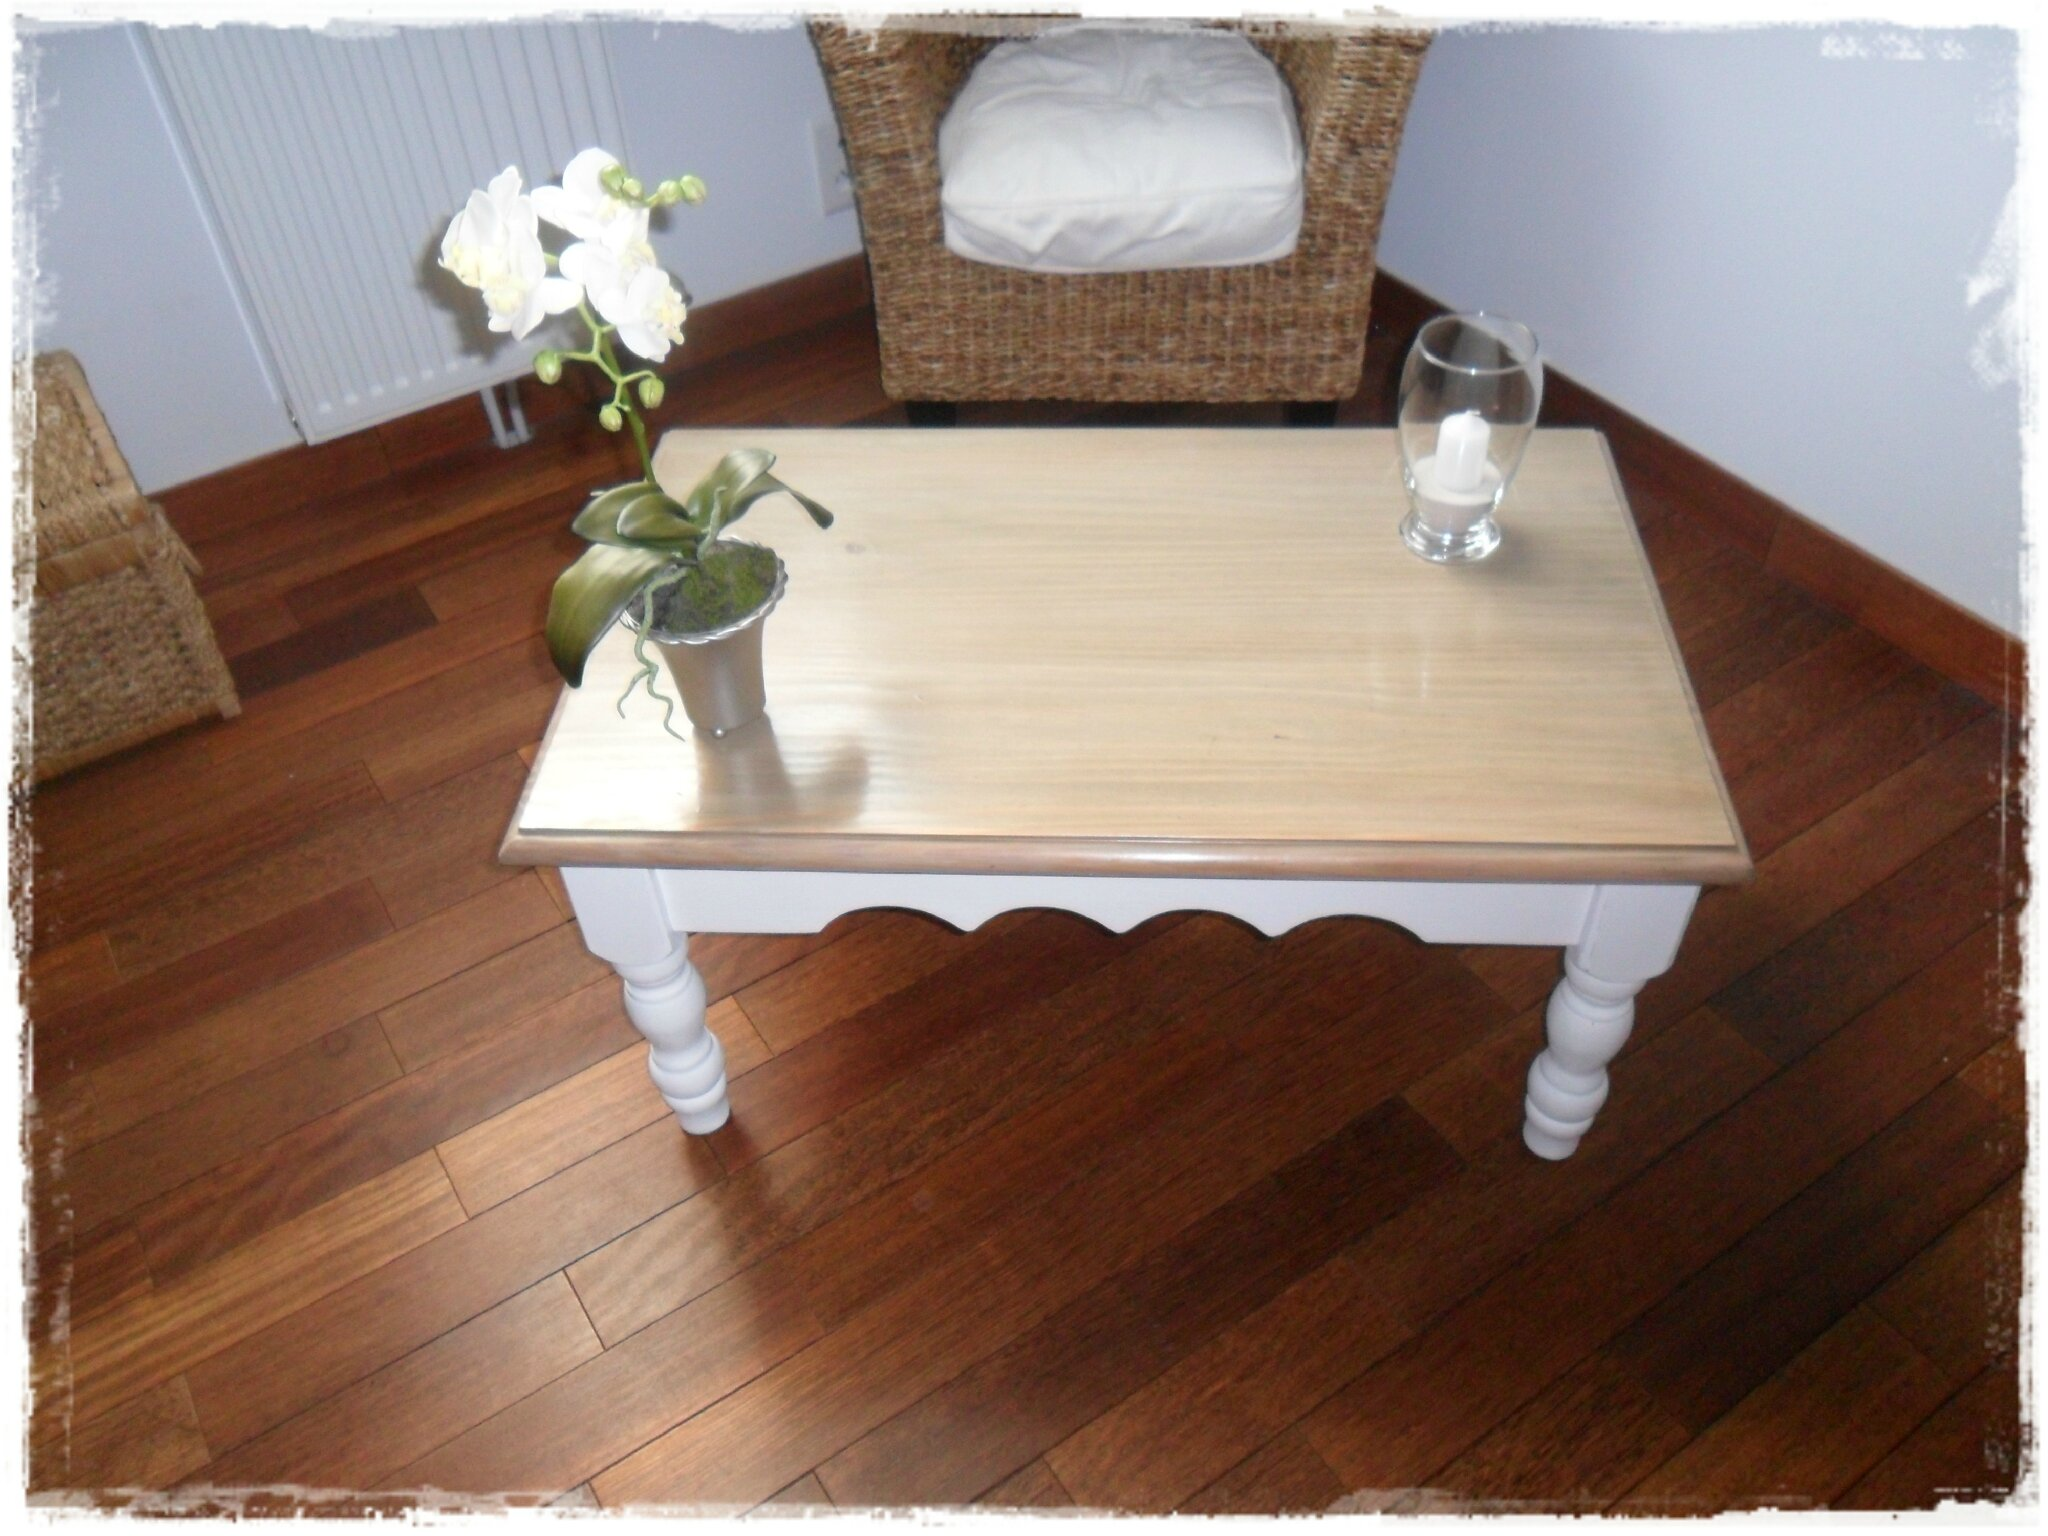 Nouveau look pour table en pin broc et patine le for Repeindre meuble en pin